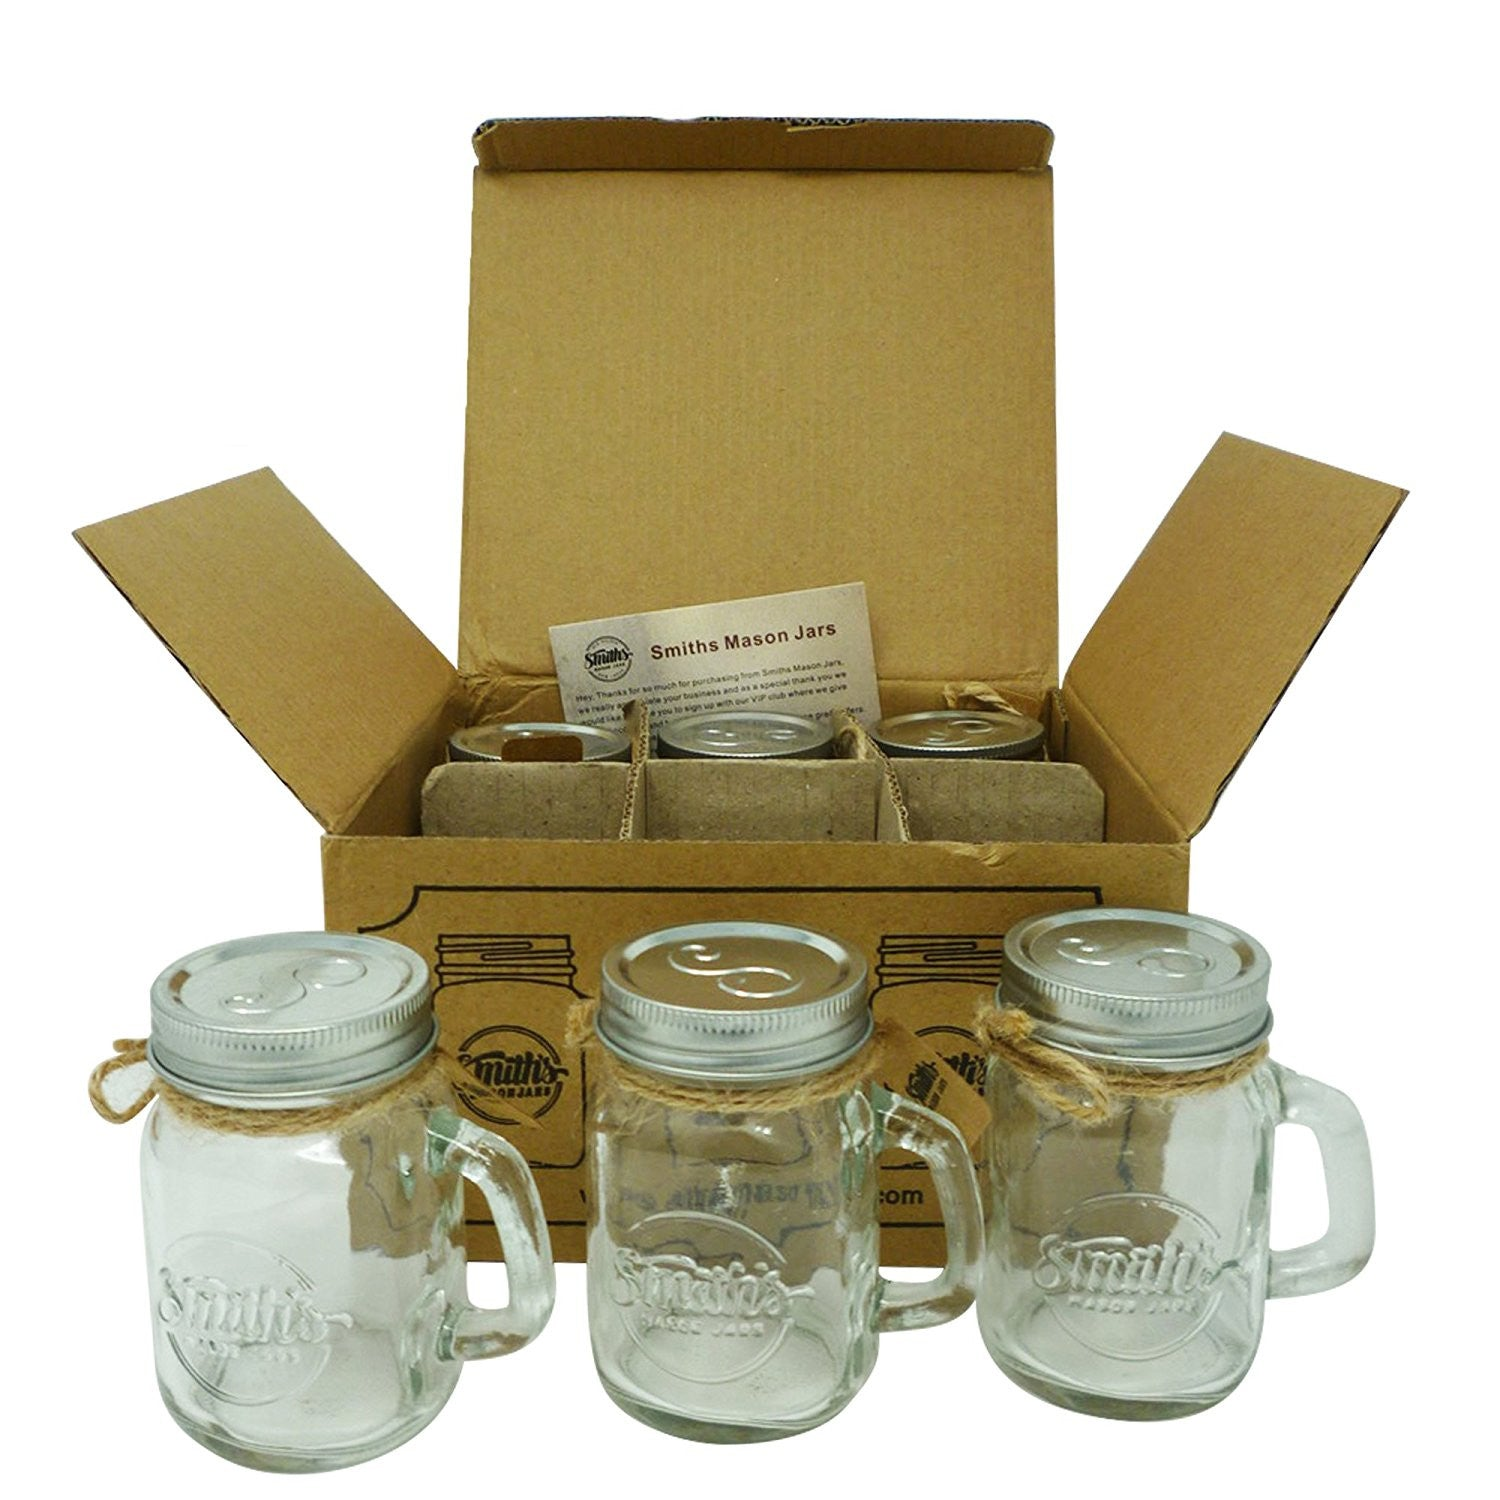 Smith's Mason Jars Mini Mason Jar Shot Glasses set of 6 Shot glasses 120 ml each